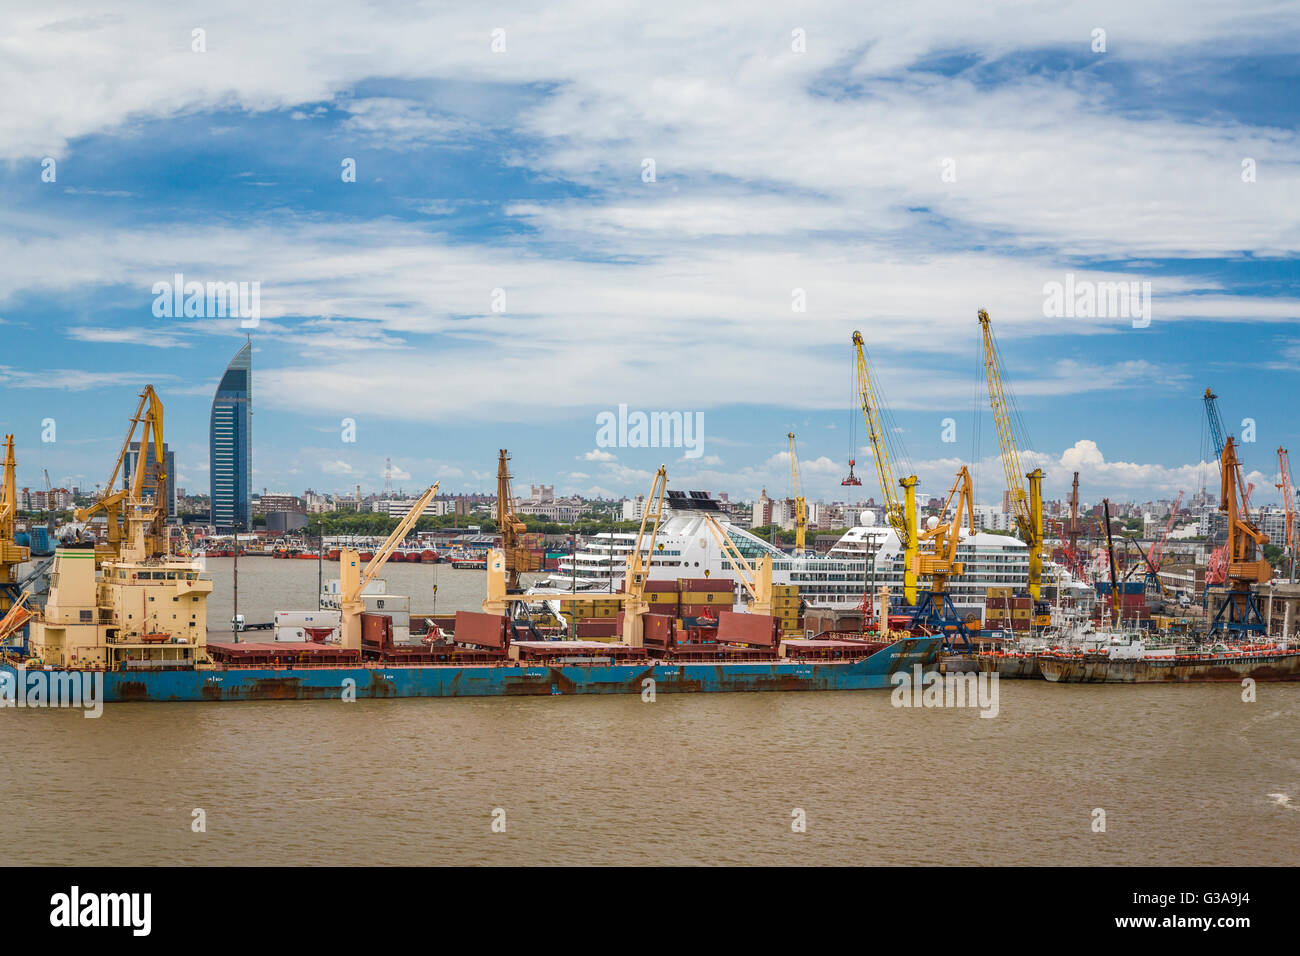 The port in Montevideo, Uruguay, South America. - Stock Image